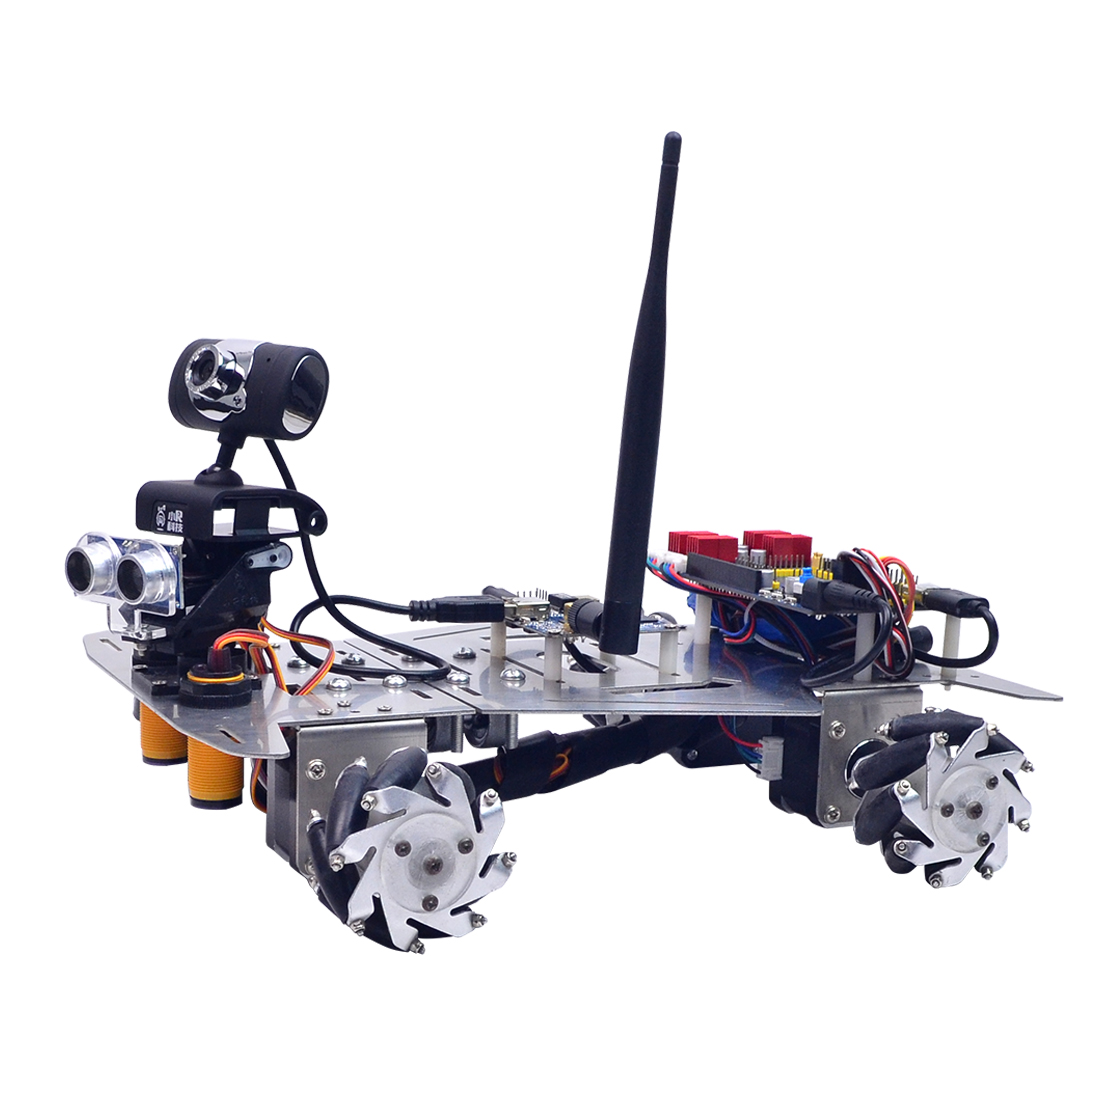 XR Master Omni-Directional Mecanum Wheel Robot Programmable Toys For Kids Boys - WIFI Version / WIFI + Bluetooth Version